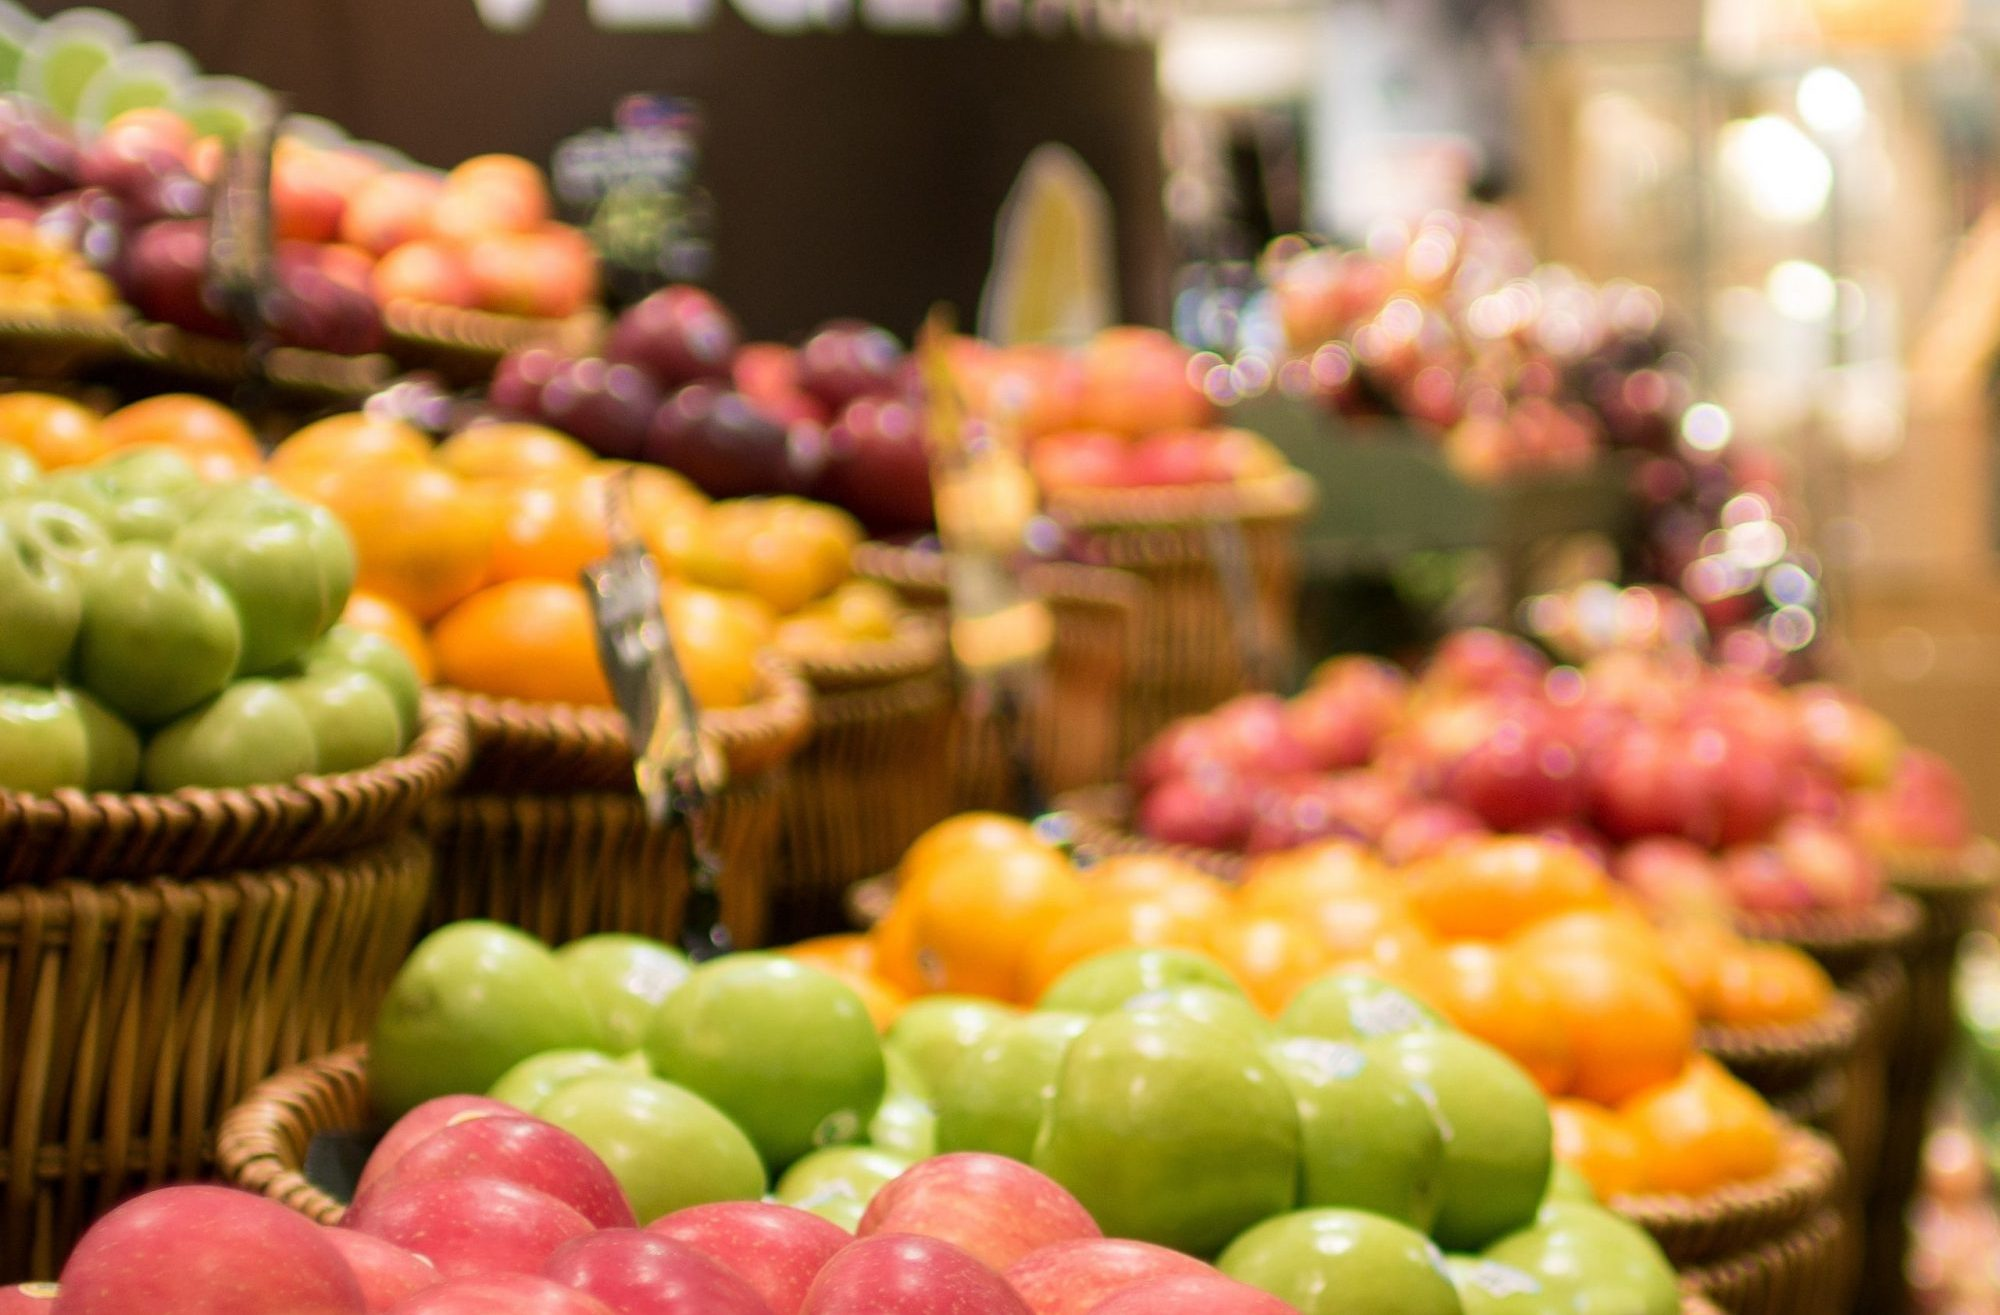 Canada food retail body issues own call for grocery code of conduct